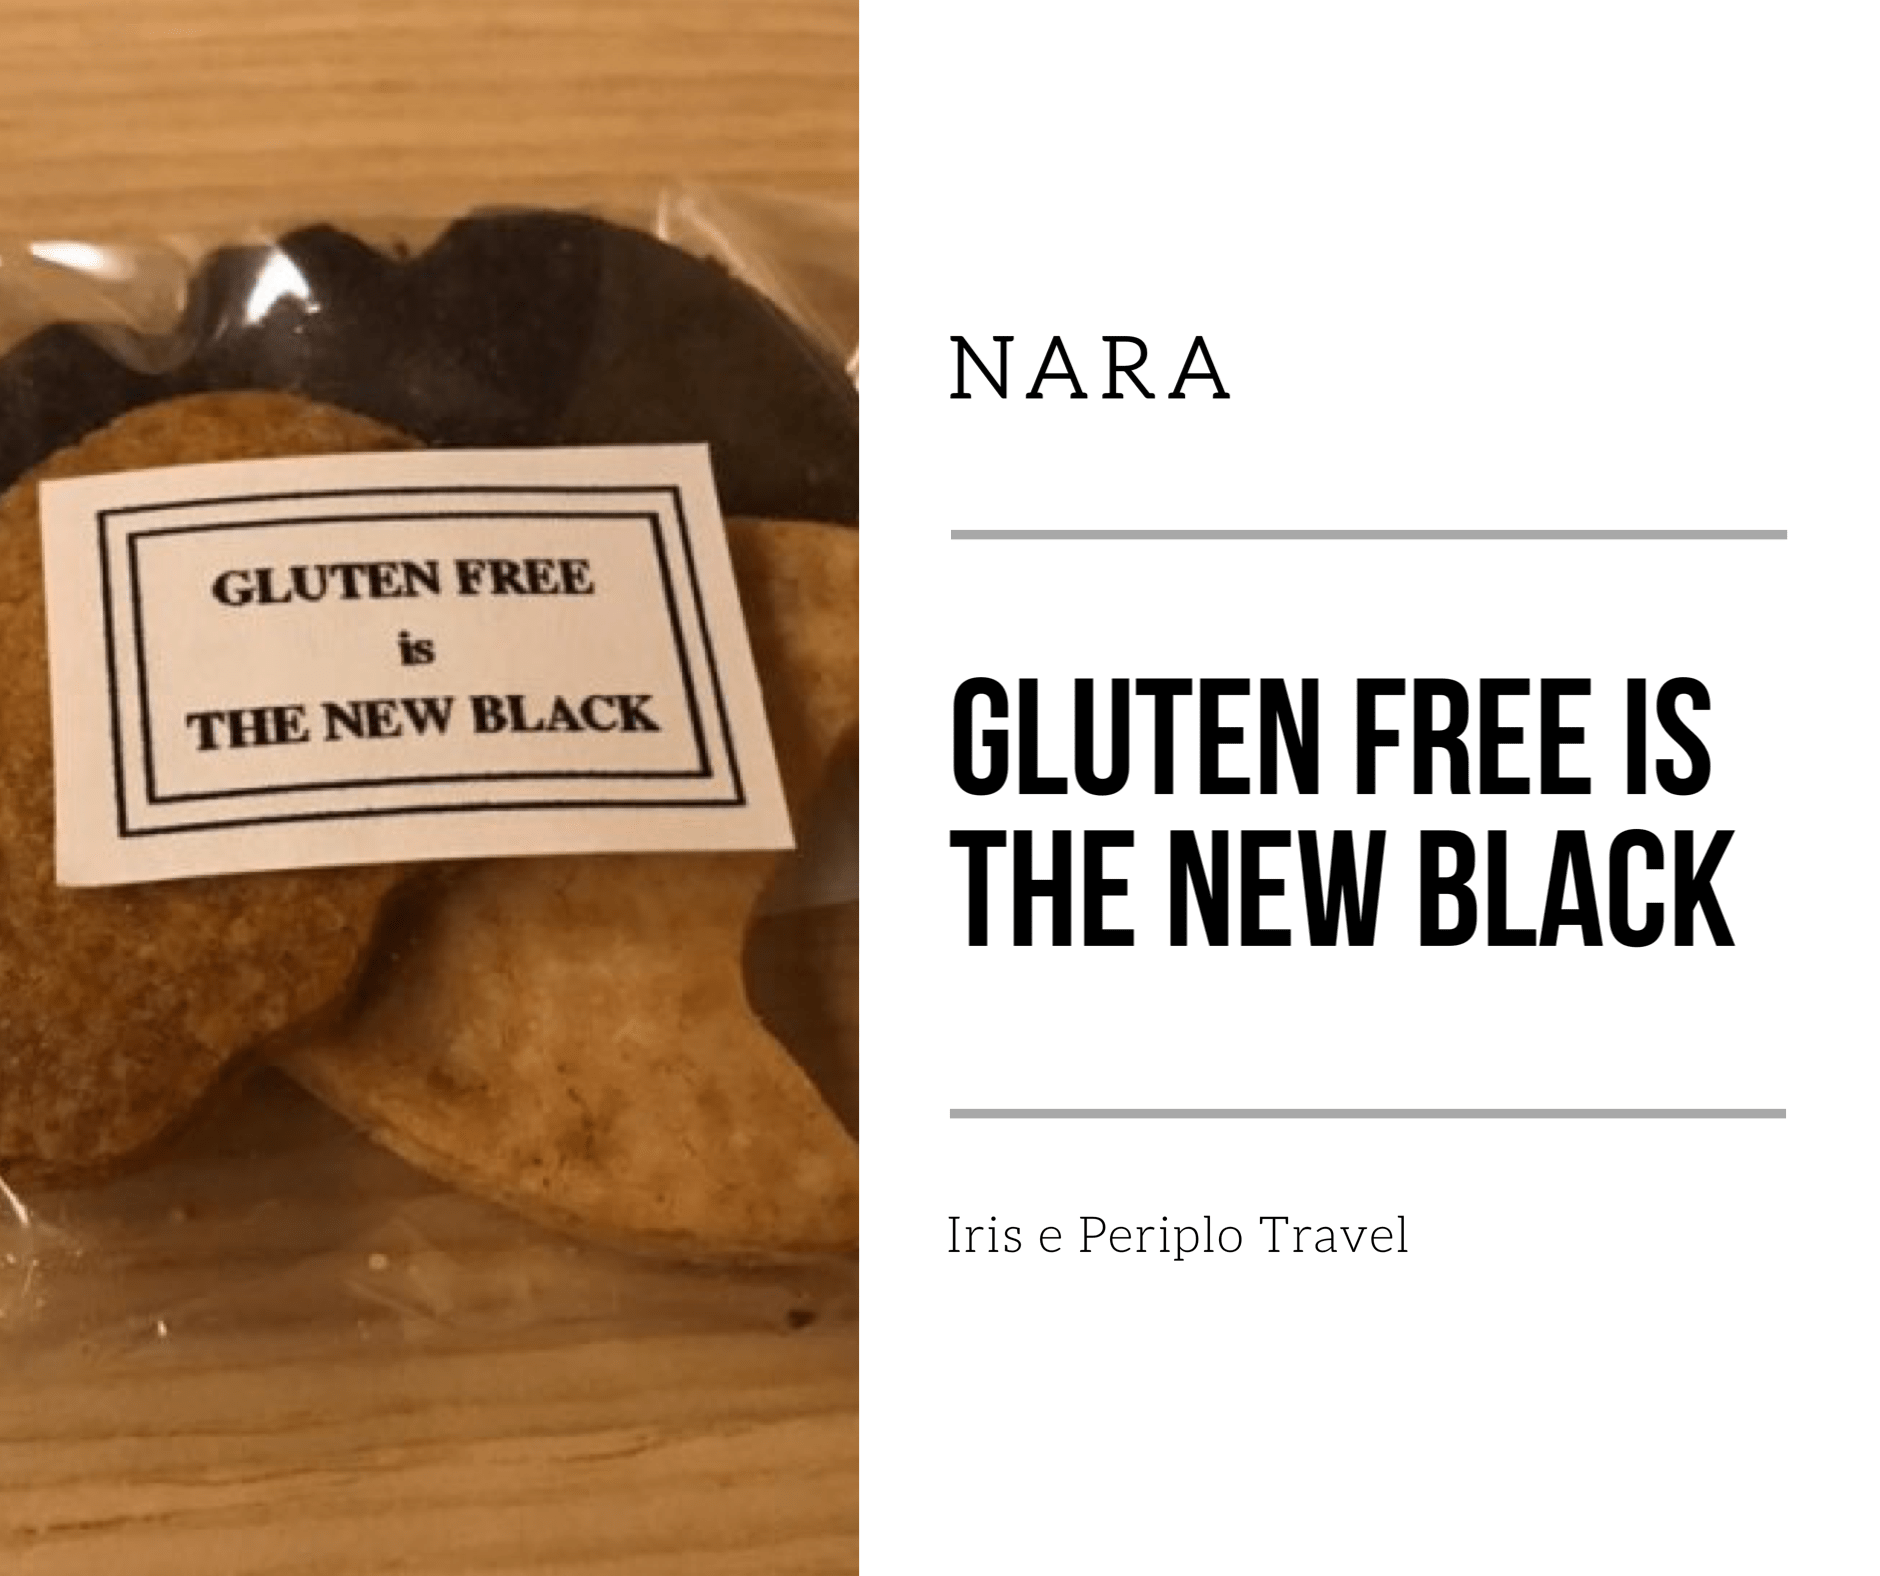 gluten free is the new black